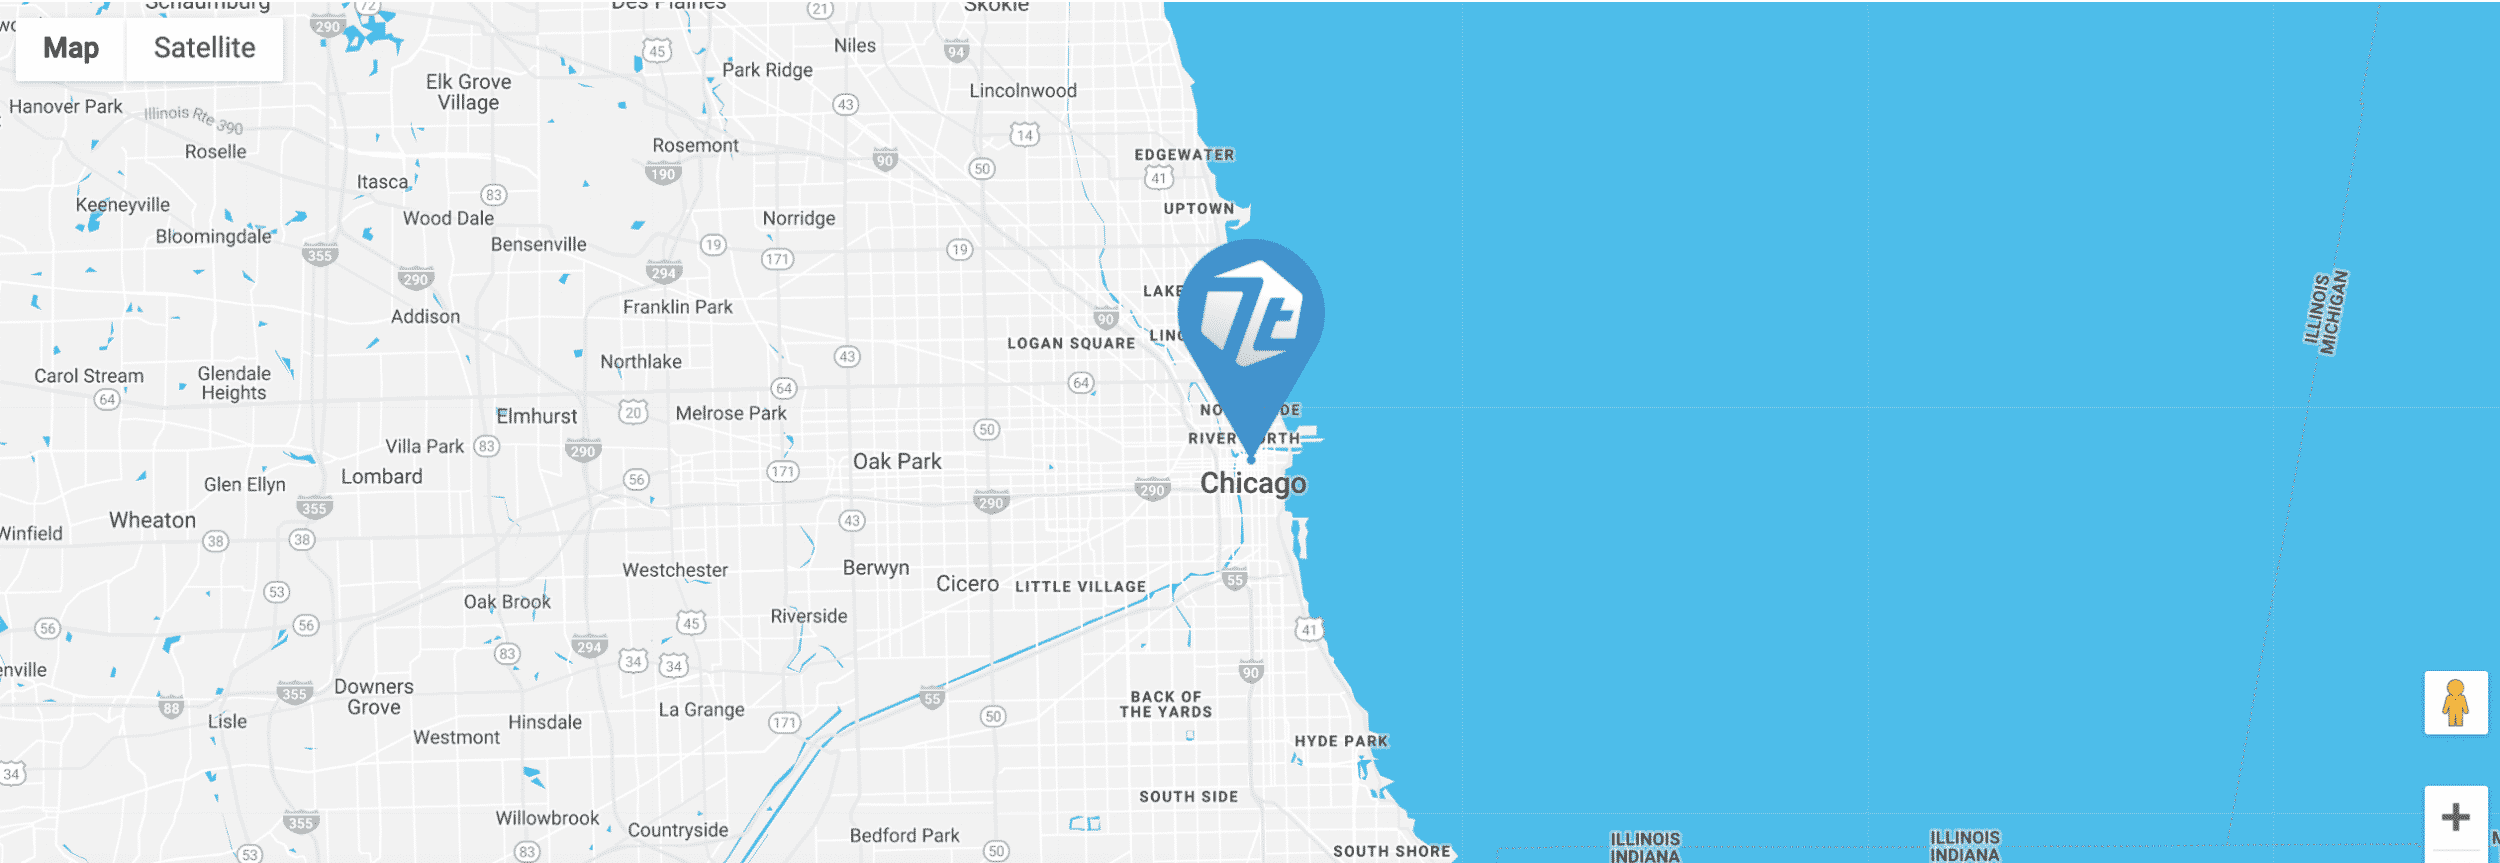 Learn More About Chicago Mobile App Development Company 7T